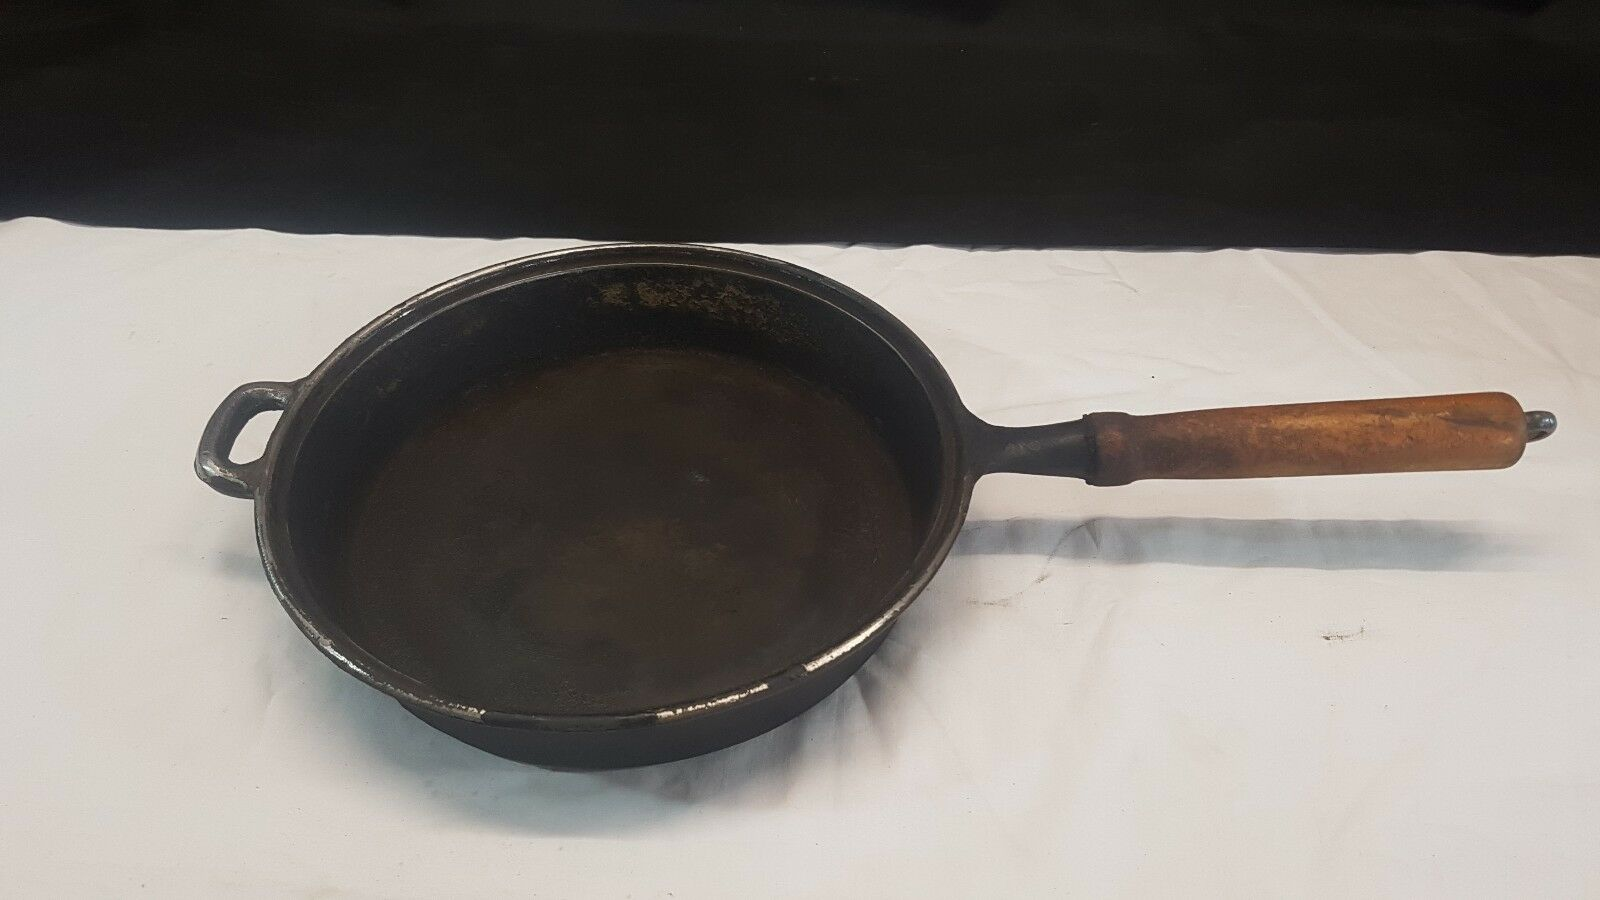 10 Inch Cast Iron Frying Pan Skellet with Wood Handle